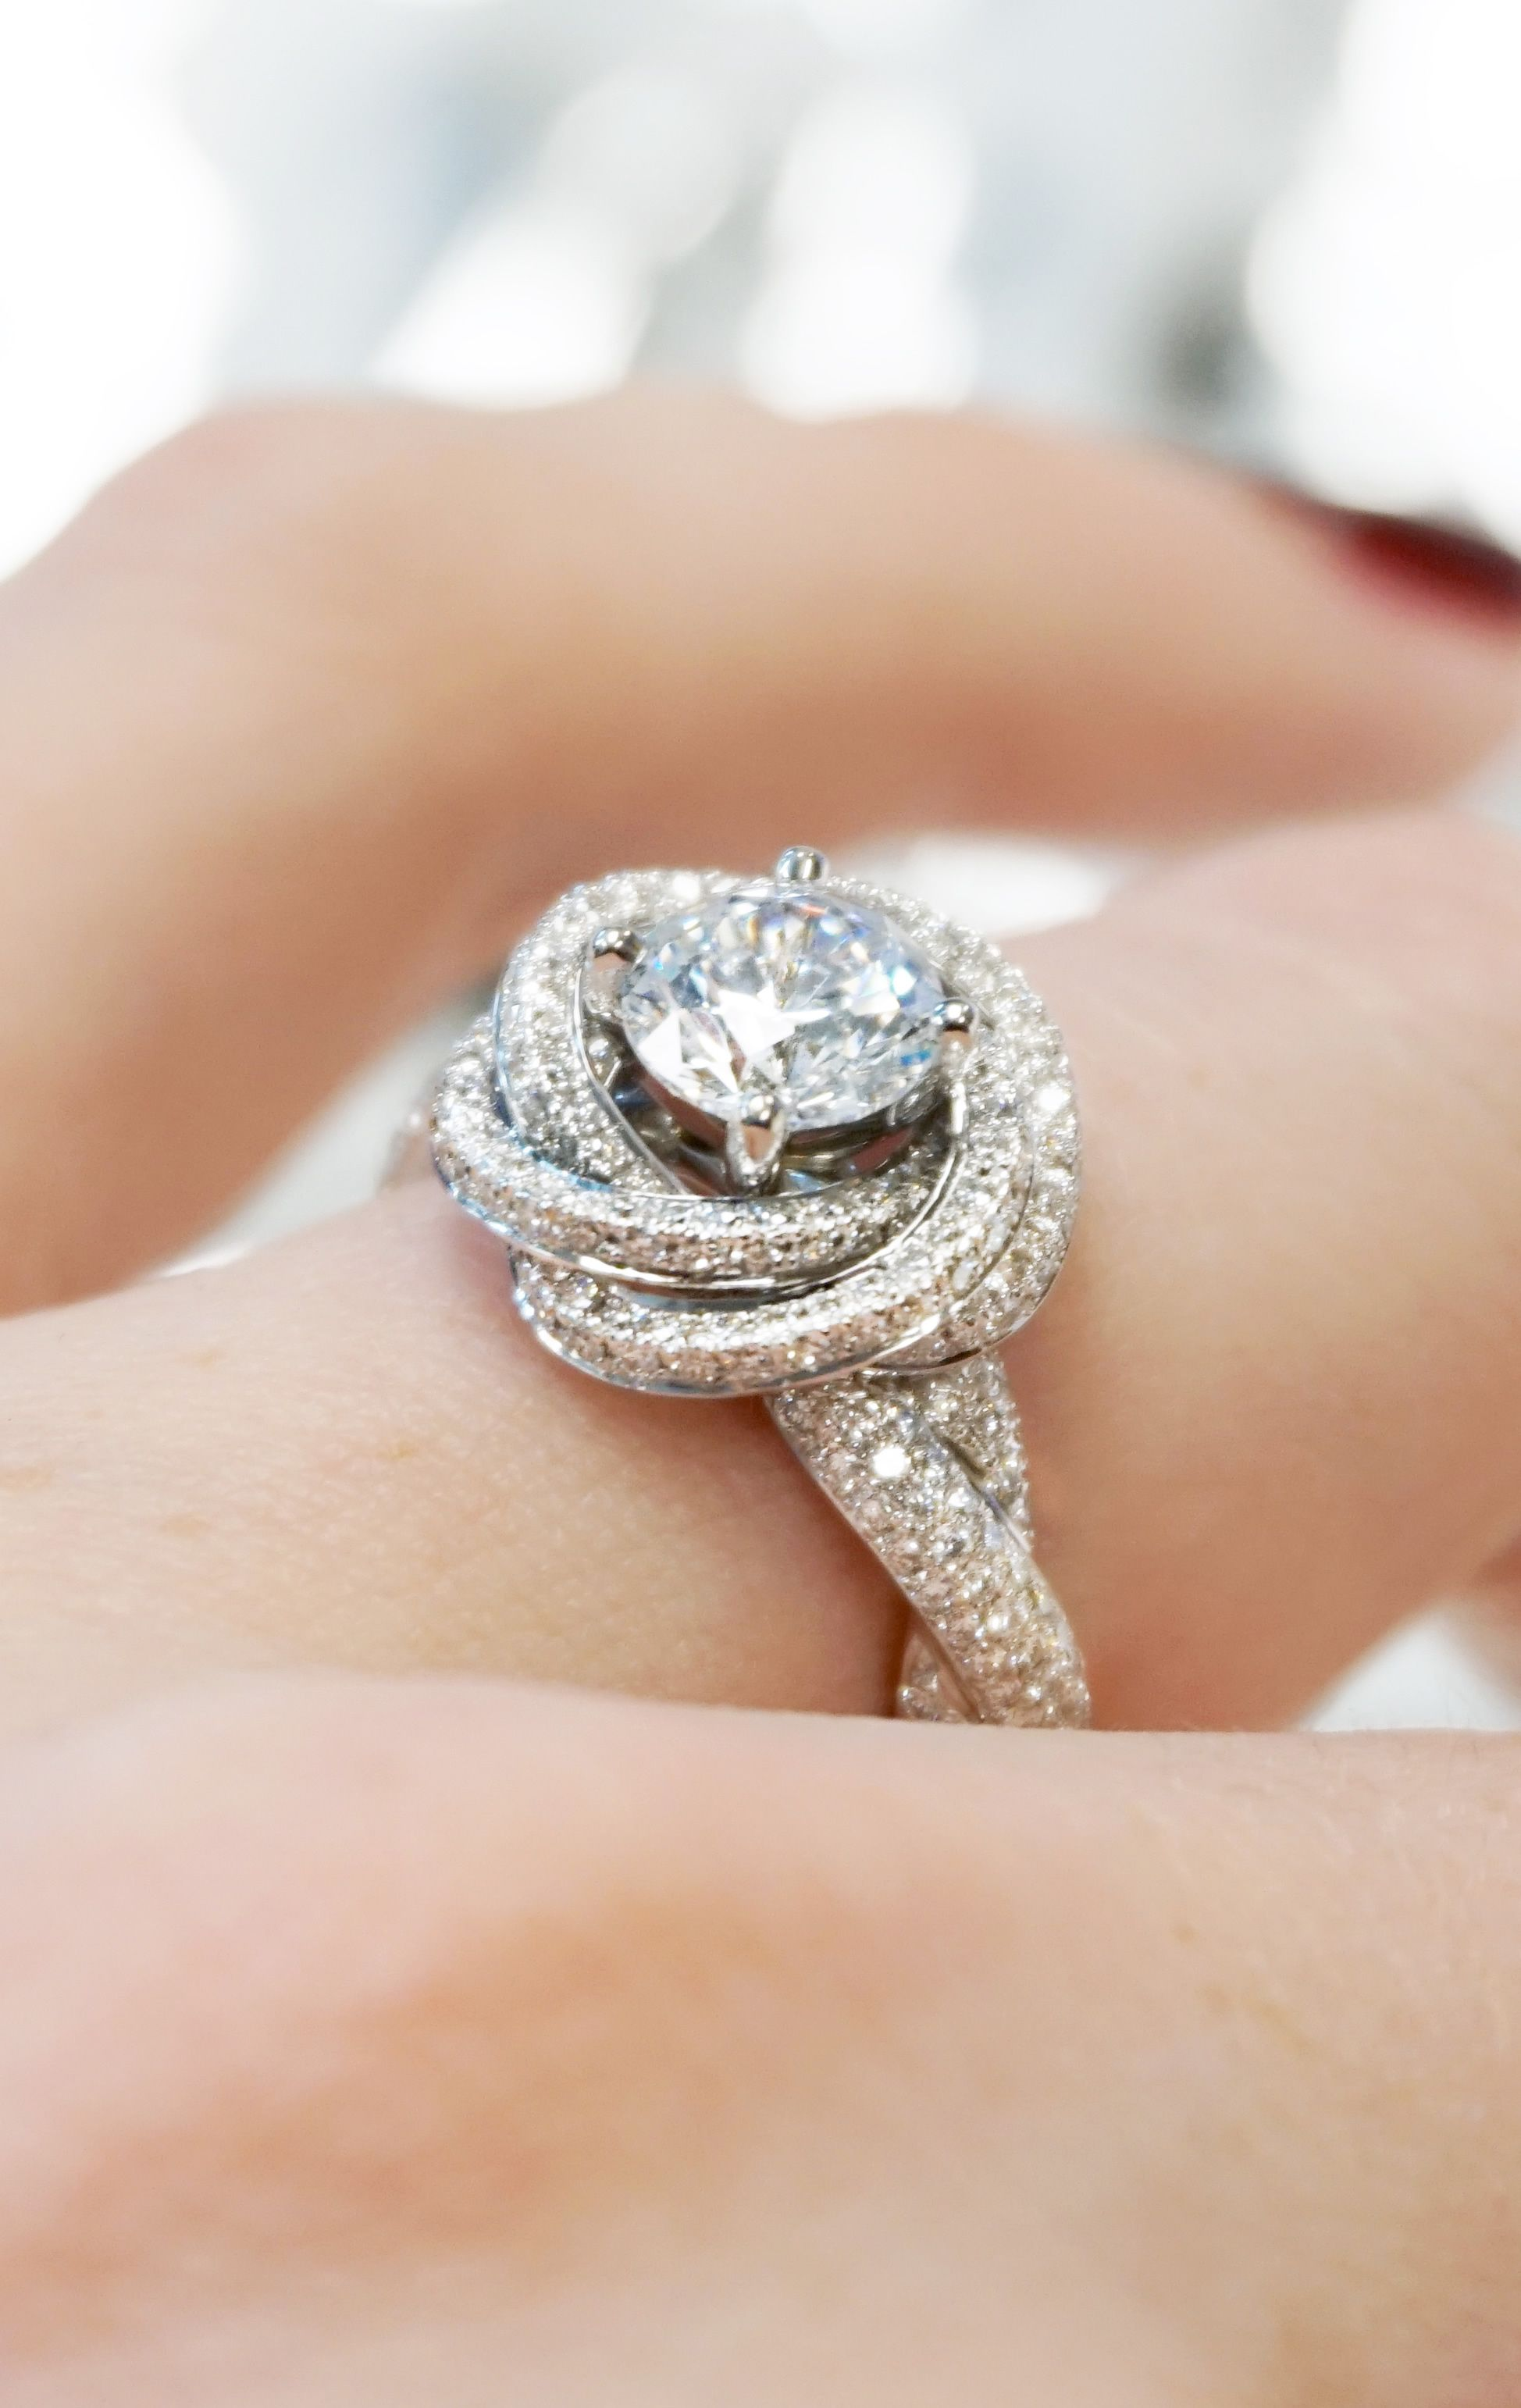 beauteous designs designer rings jewellery wedding gold engagement home latest ring unique design saudi